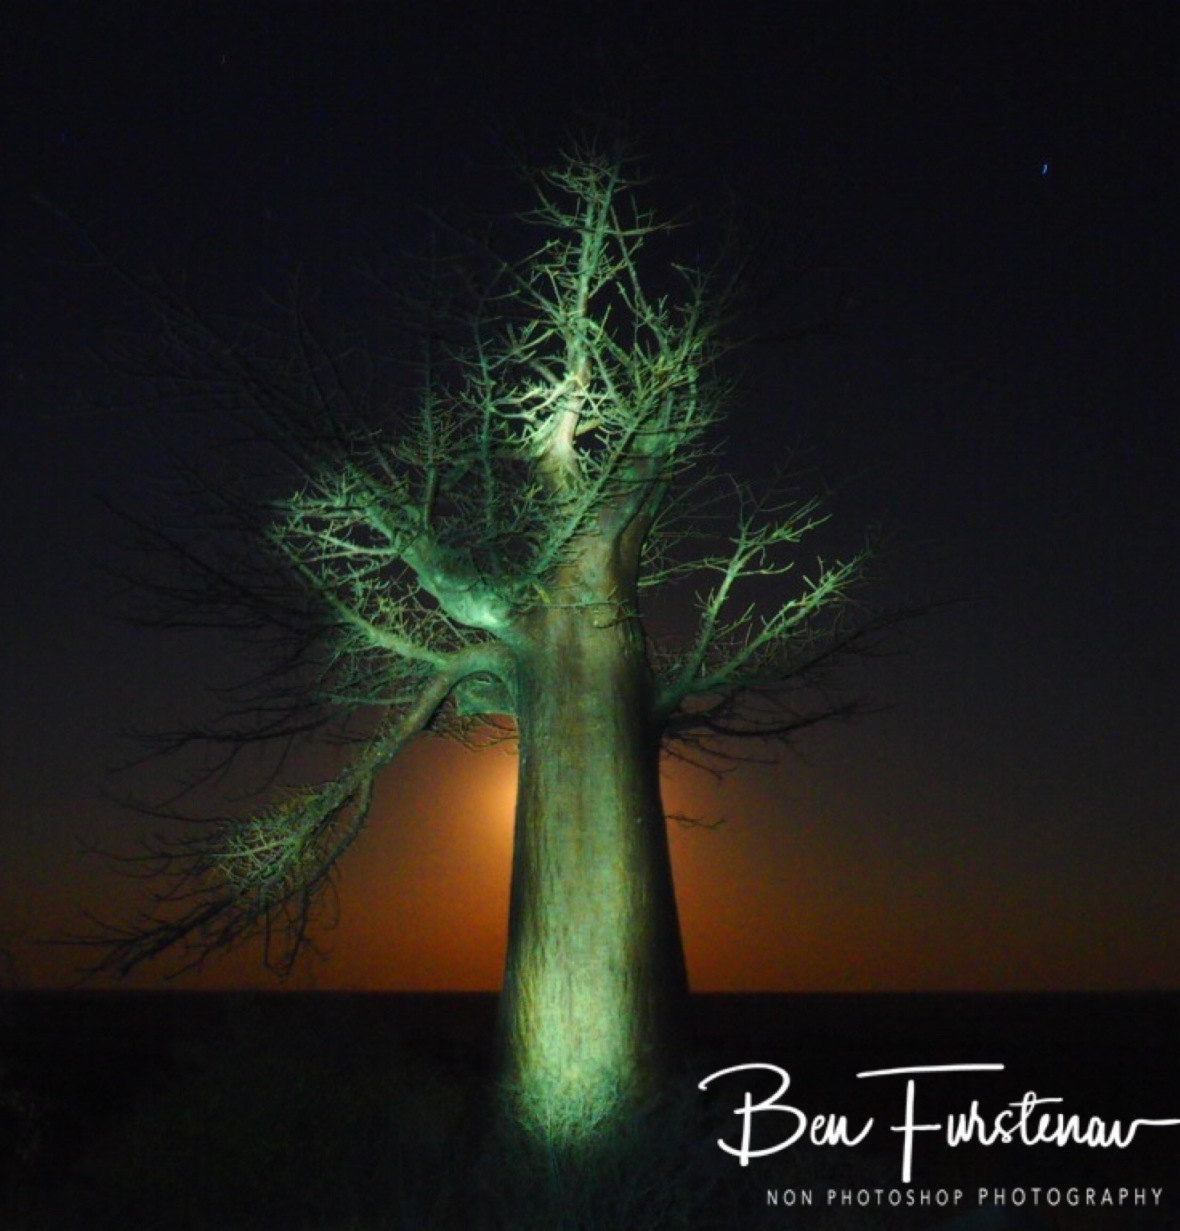 Light painting on Kubu Island, Makgadikgadi Salt Pans, Botswana